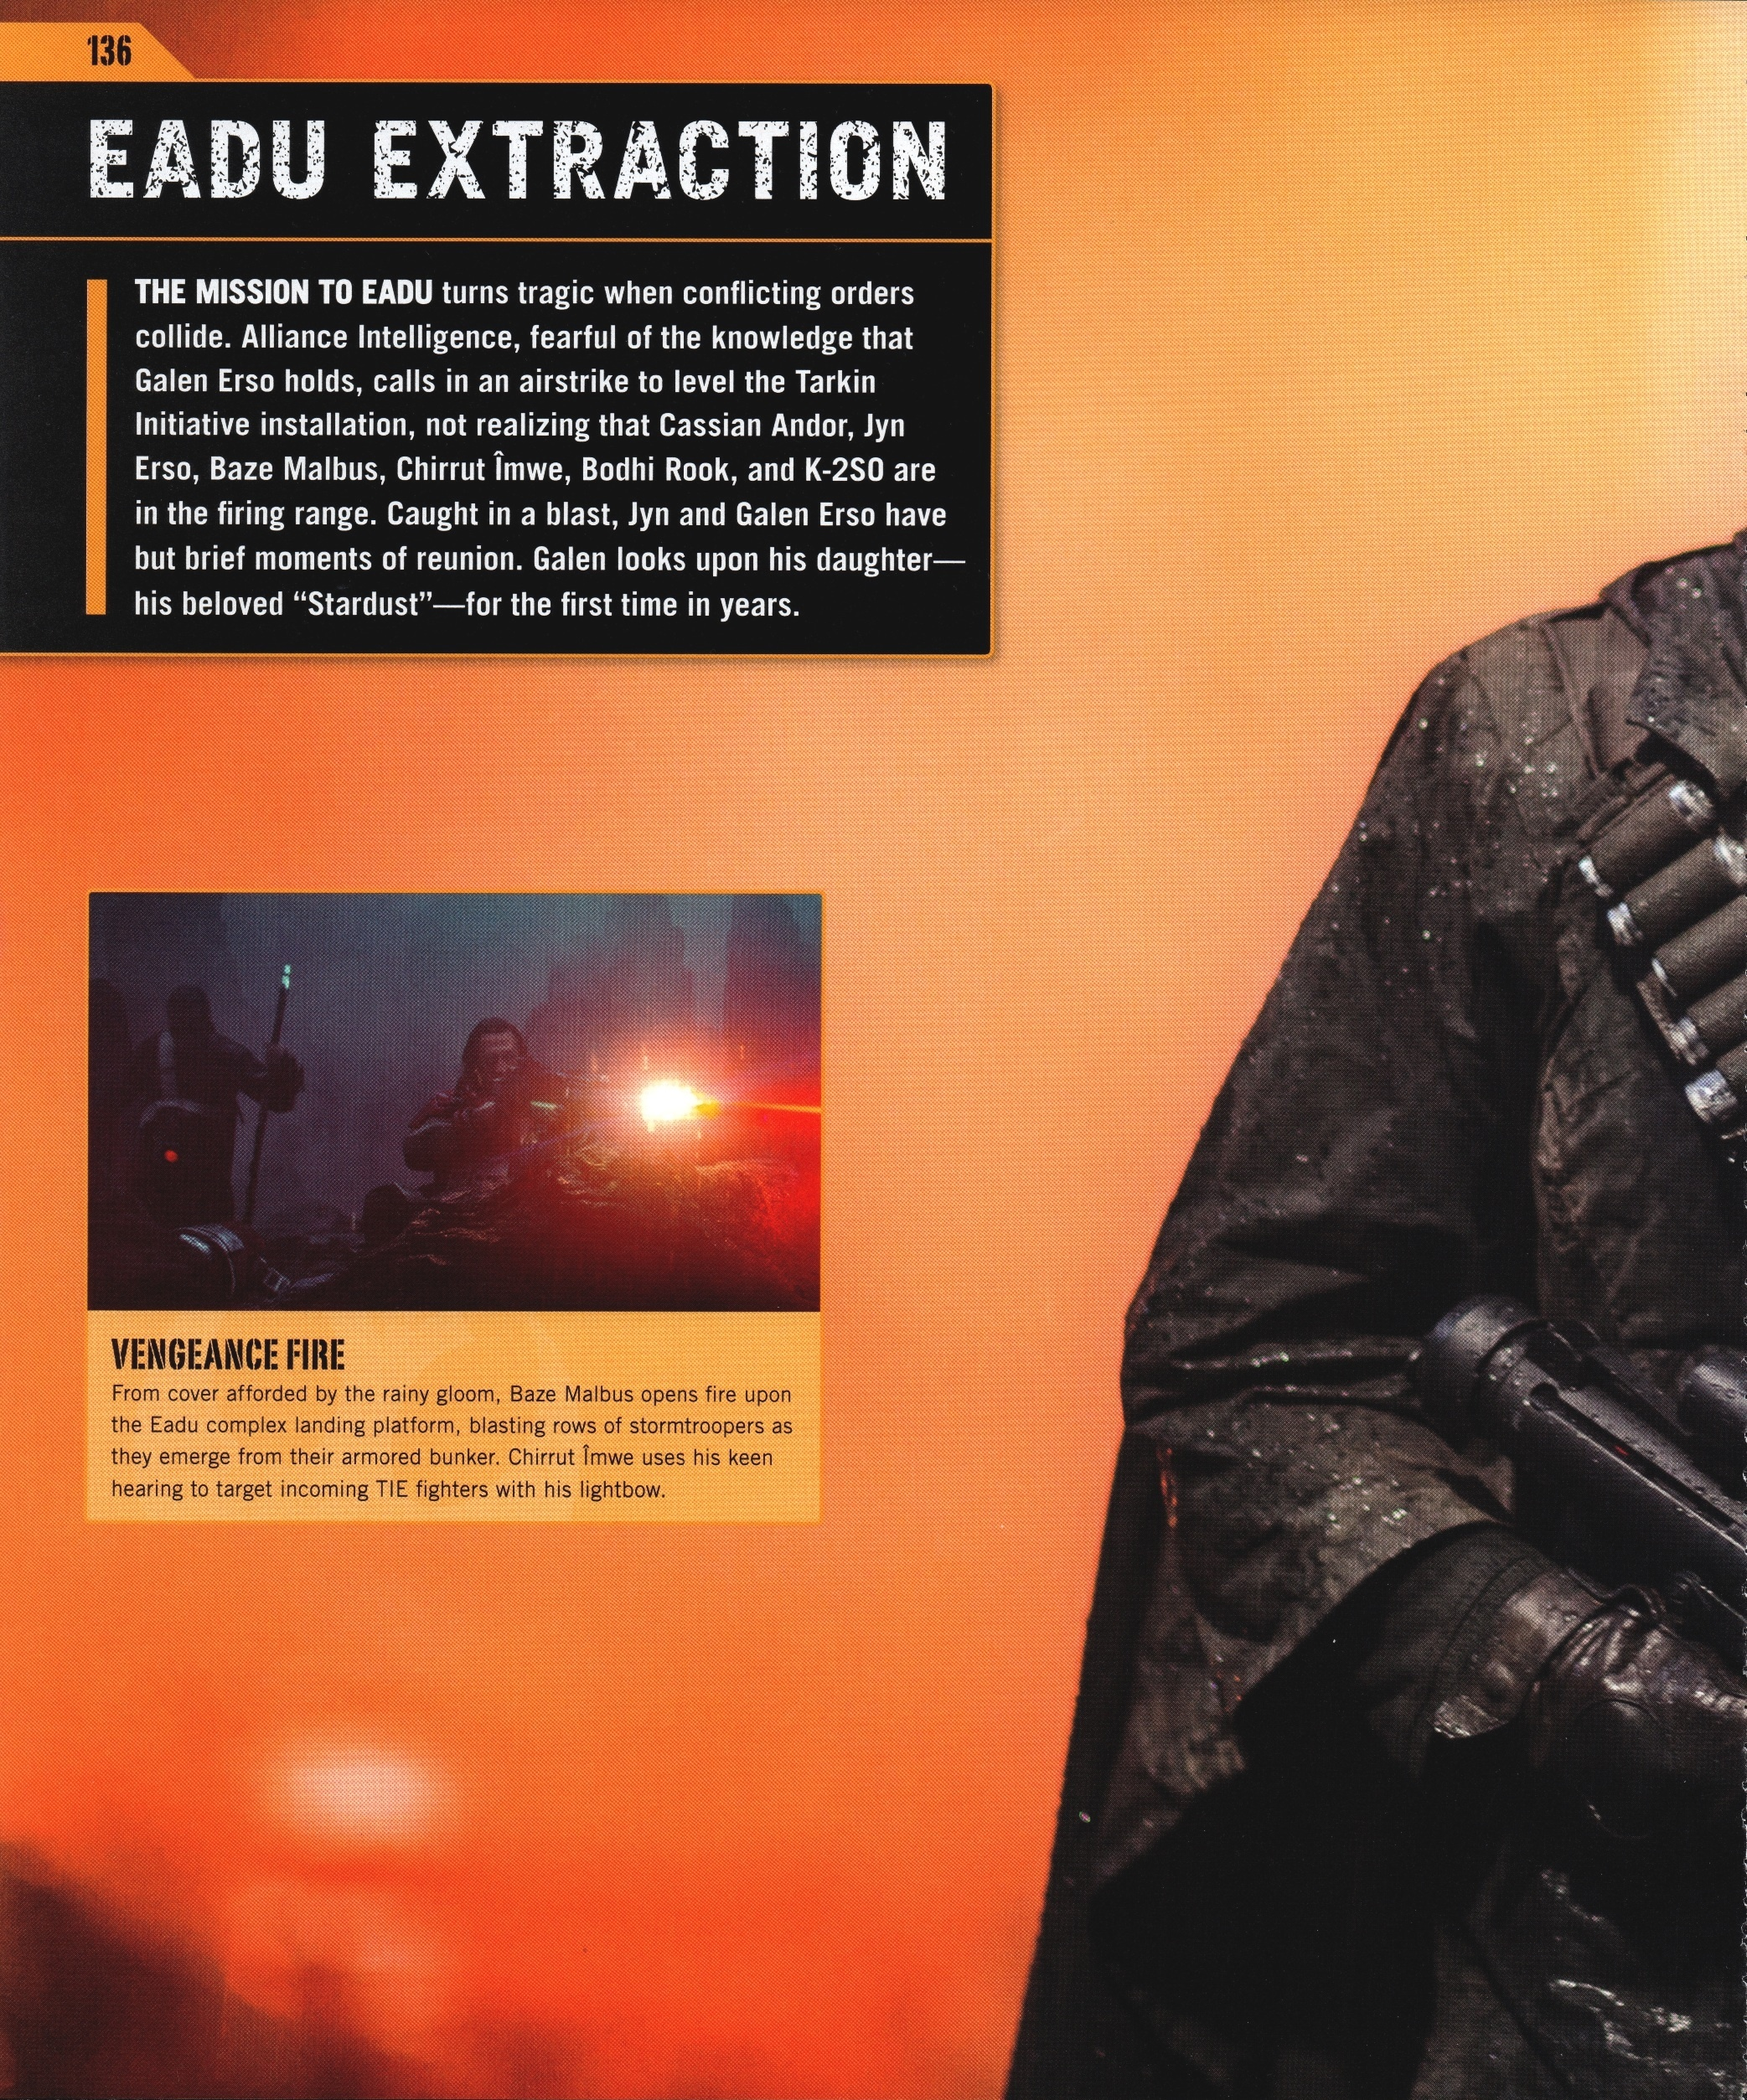 Rogue One Ultimate Visual Guide (b0bafett_Empire) p136